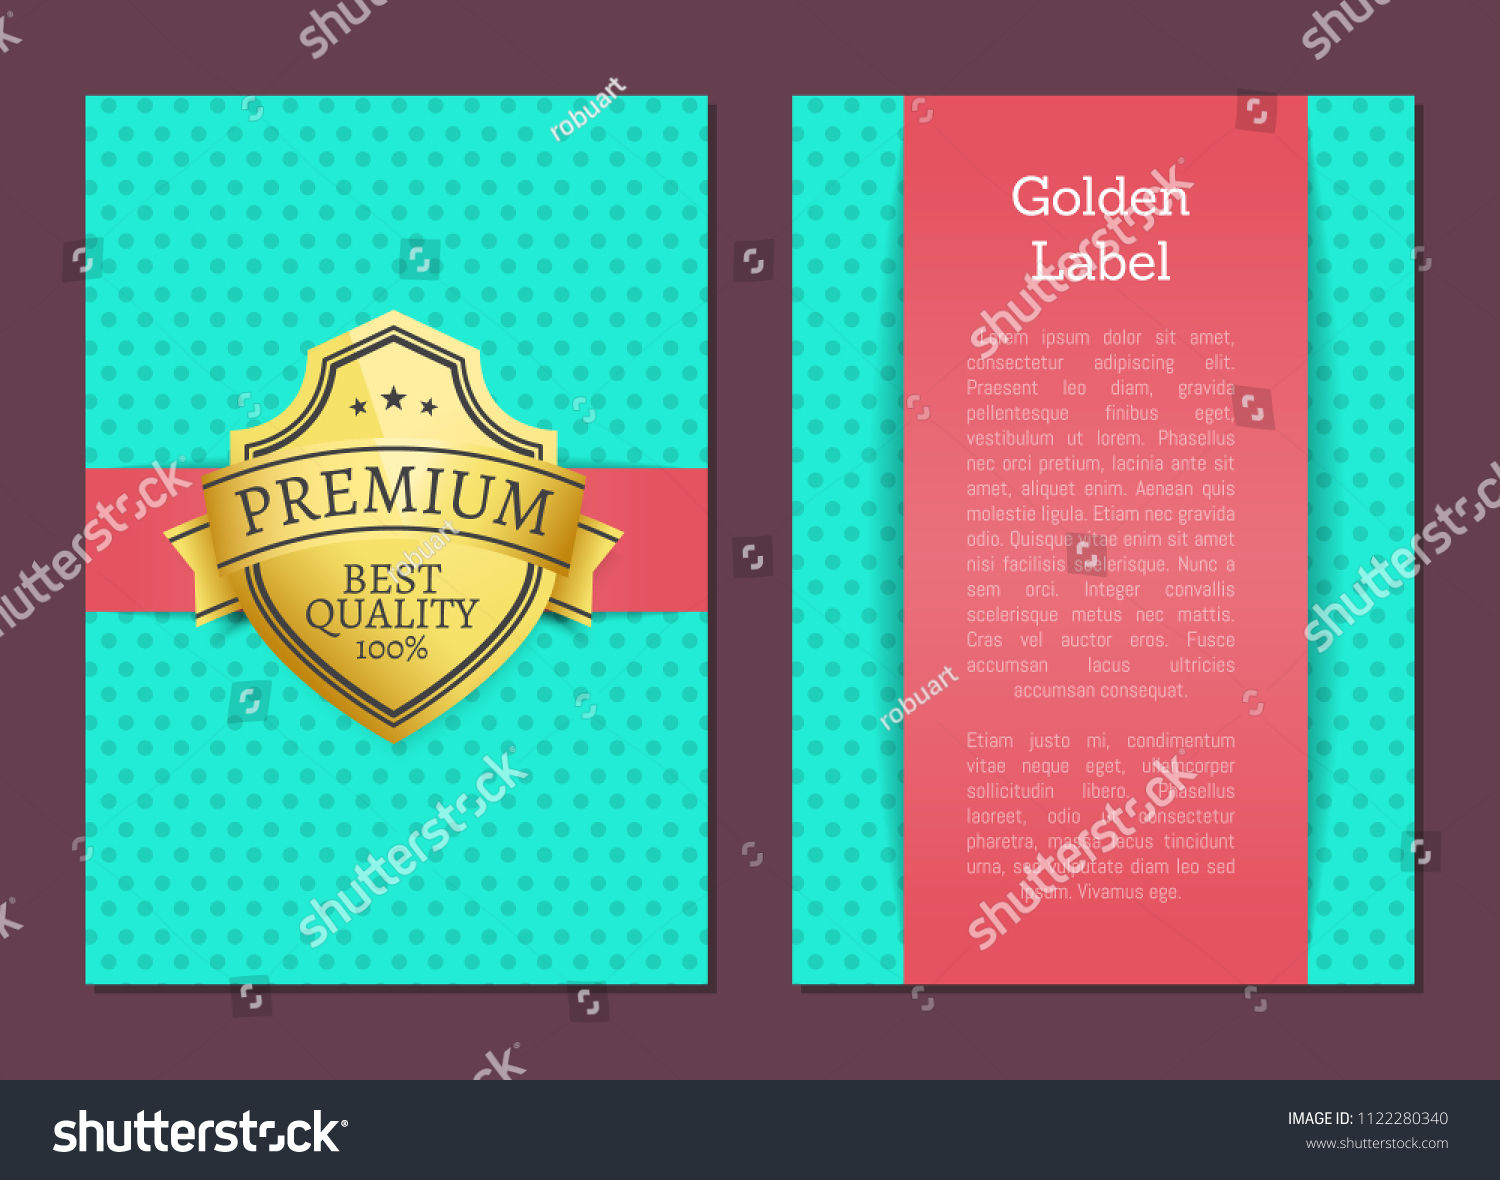 Golden label quality award premium brand 100 guarantee seal with text samples warranty sticker